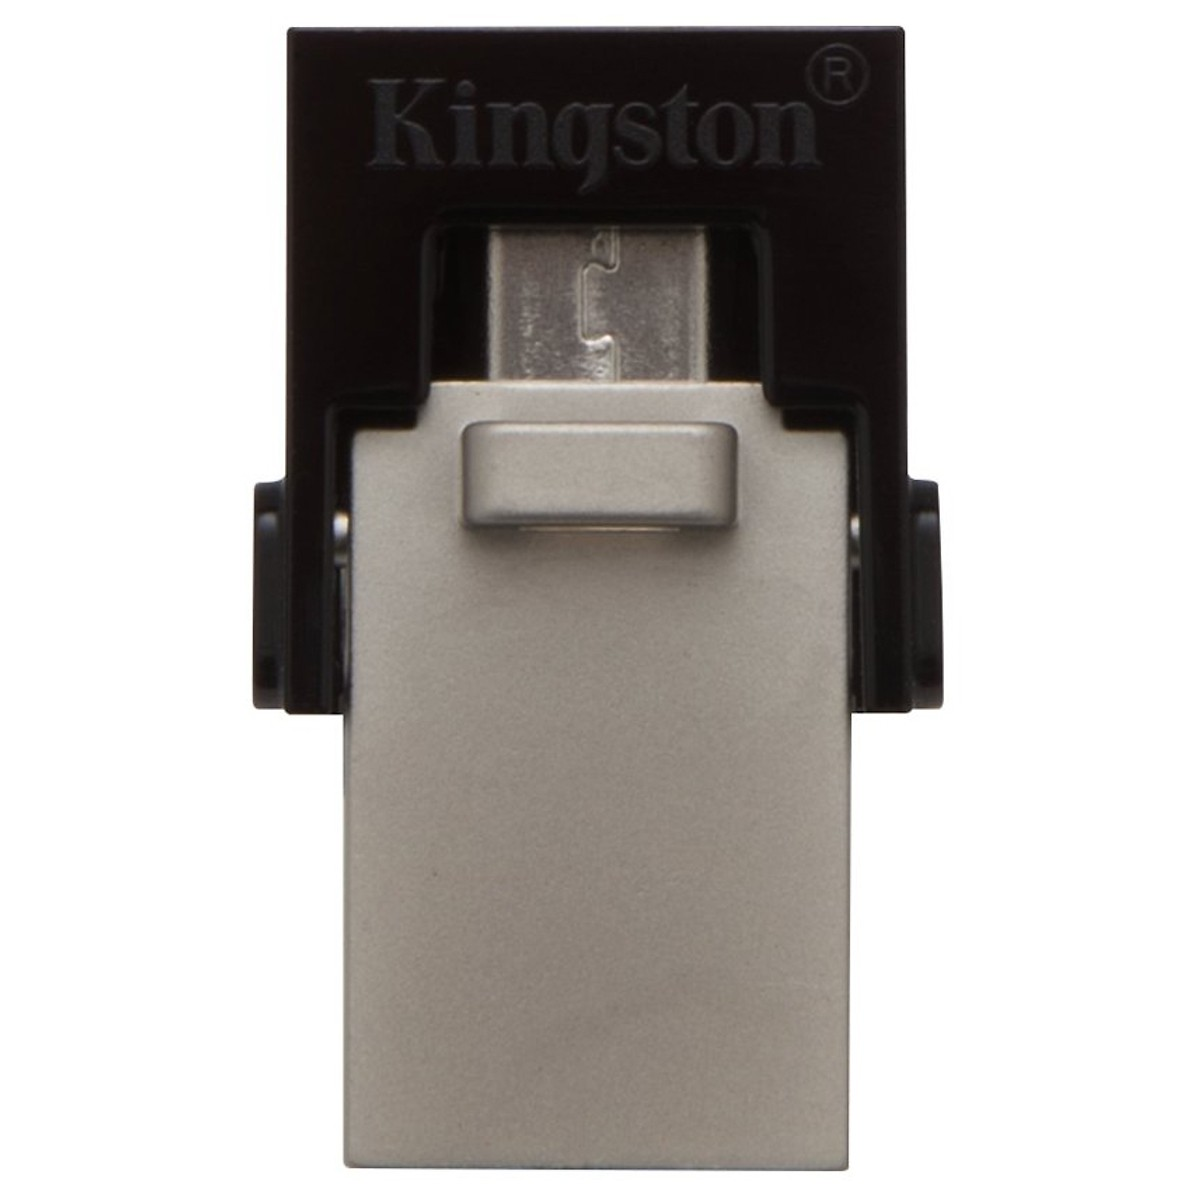 USB Kingston DTDUO3 32GB - USB 3.0